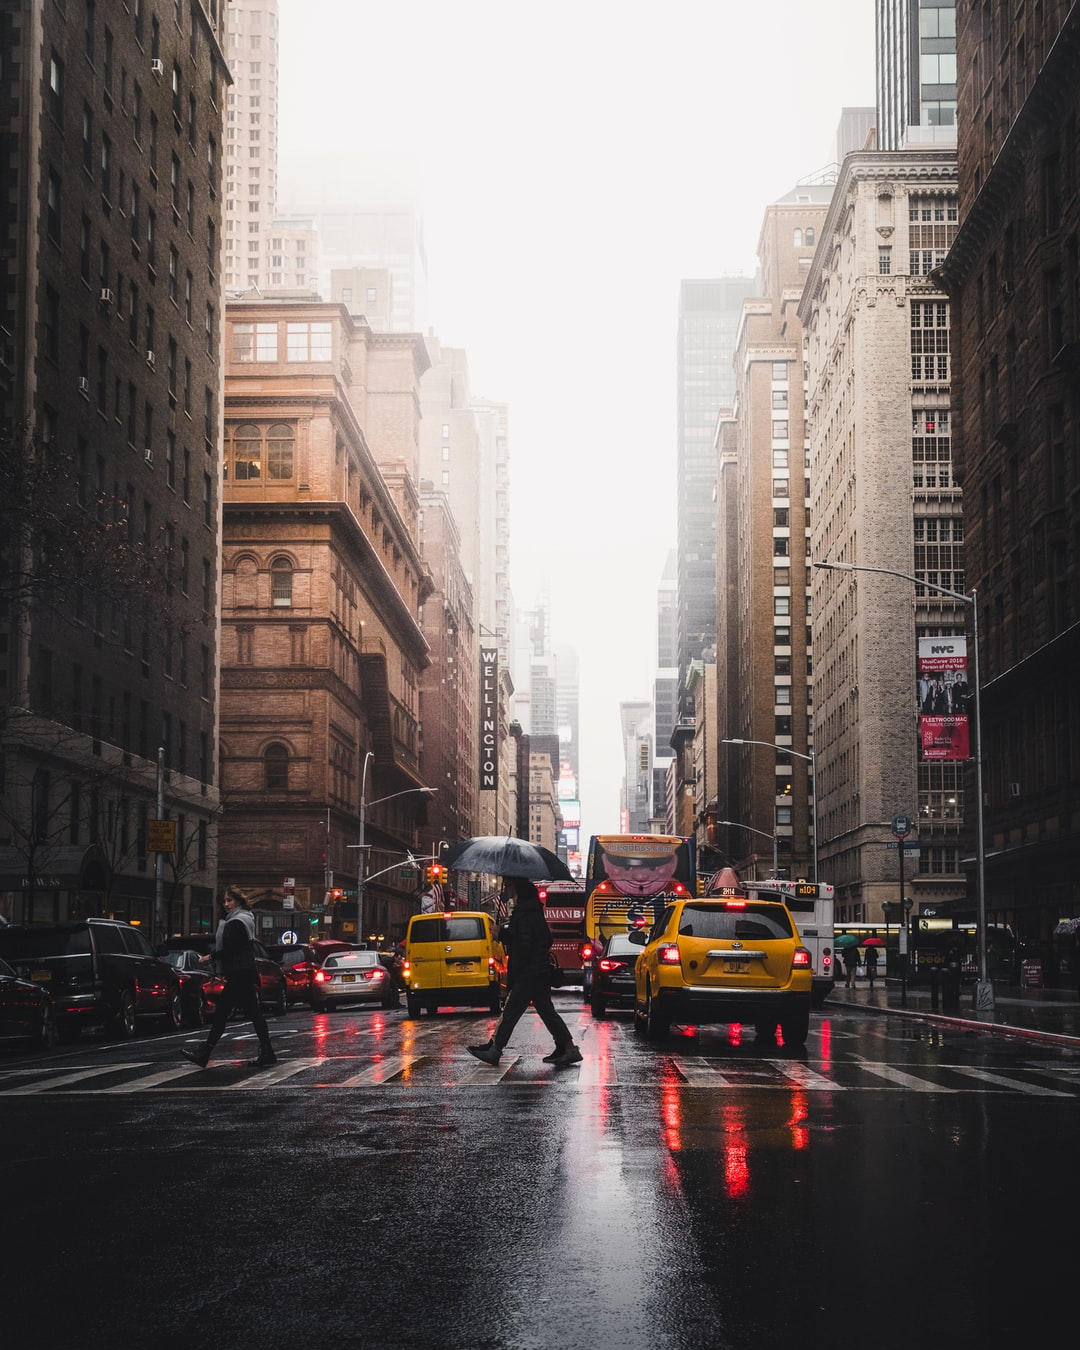 Download Free Images On Unsplash: 900+ New York Images: Download HD Pictures & Photos On